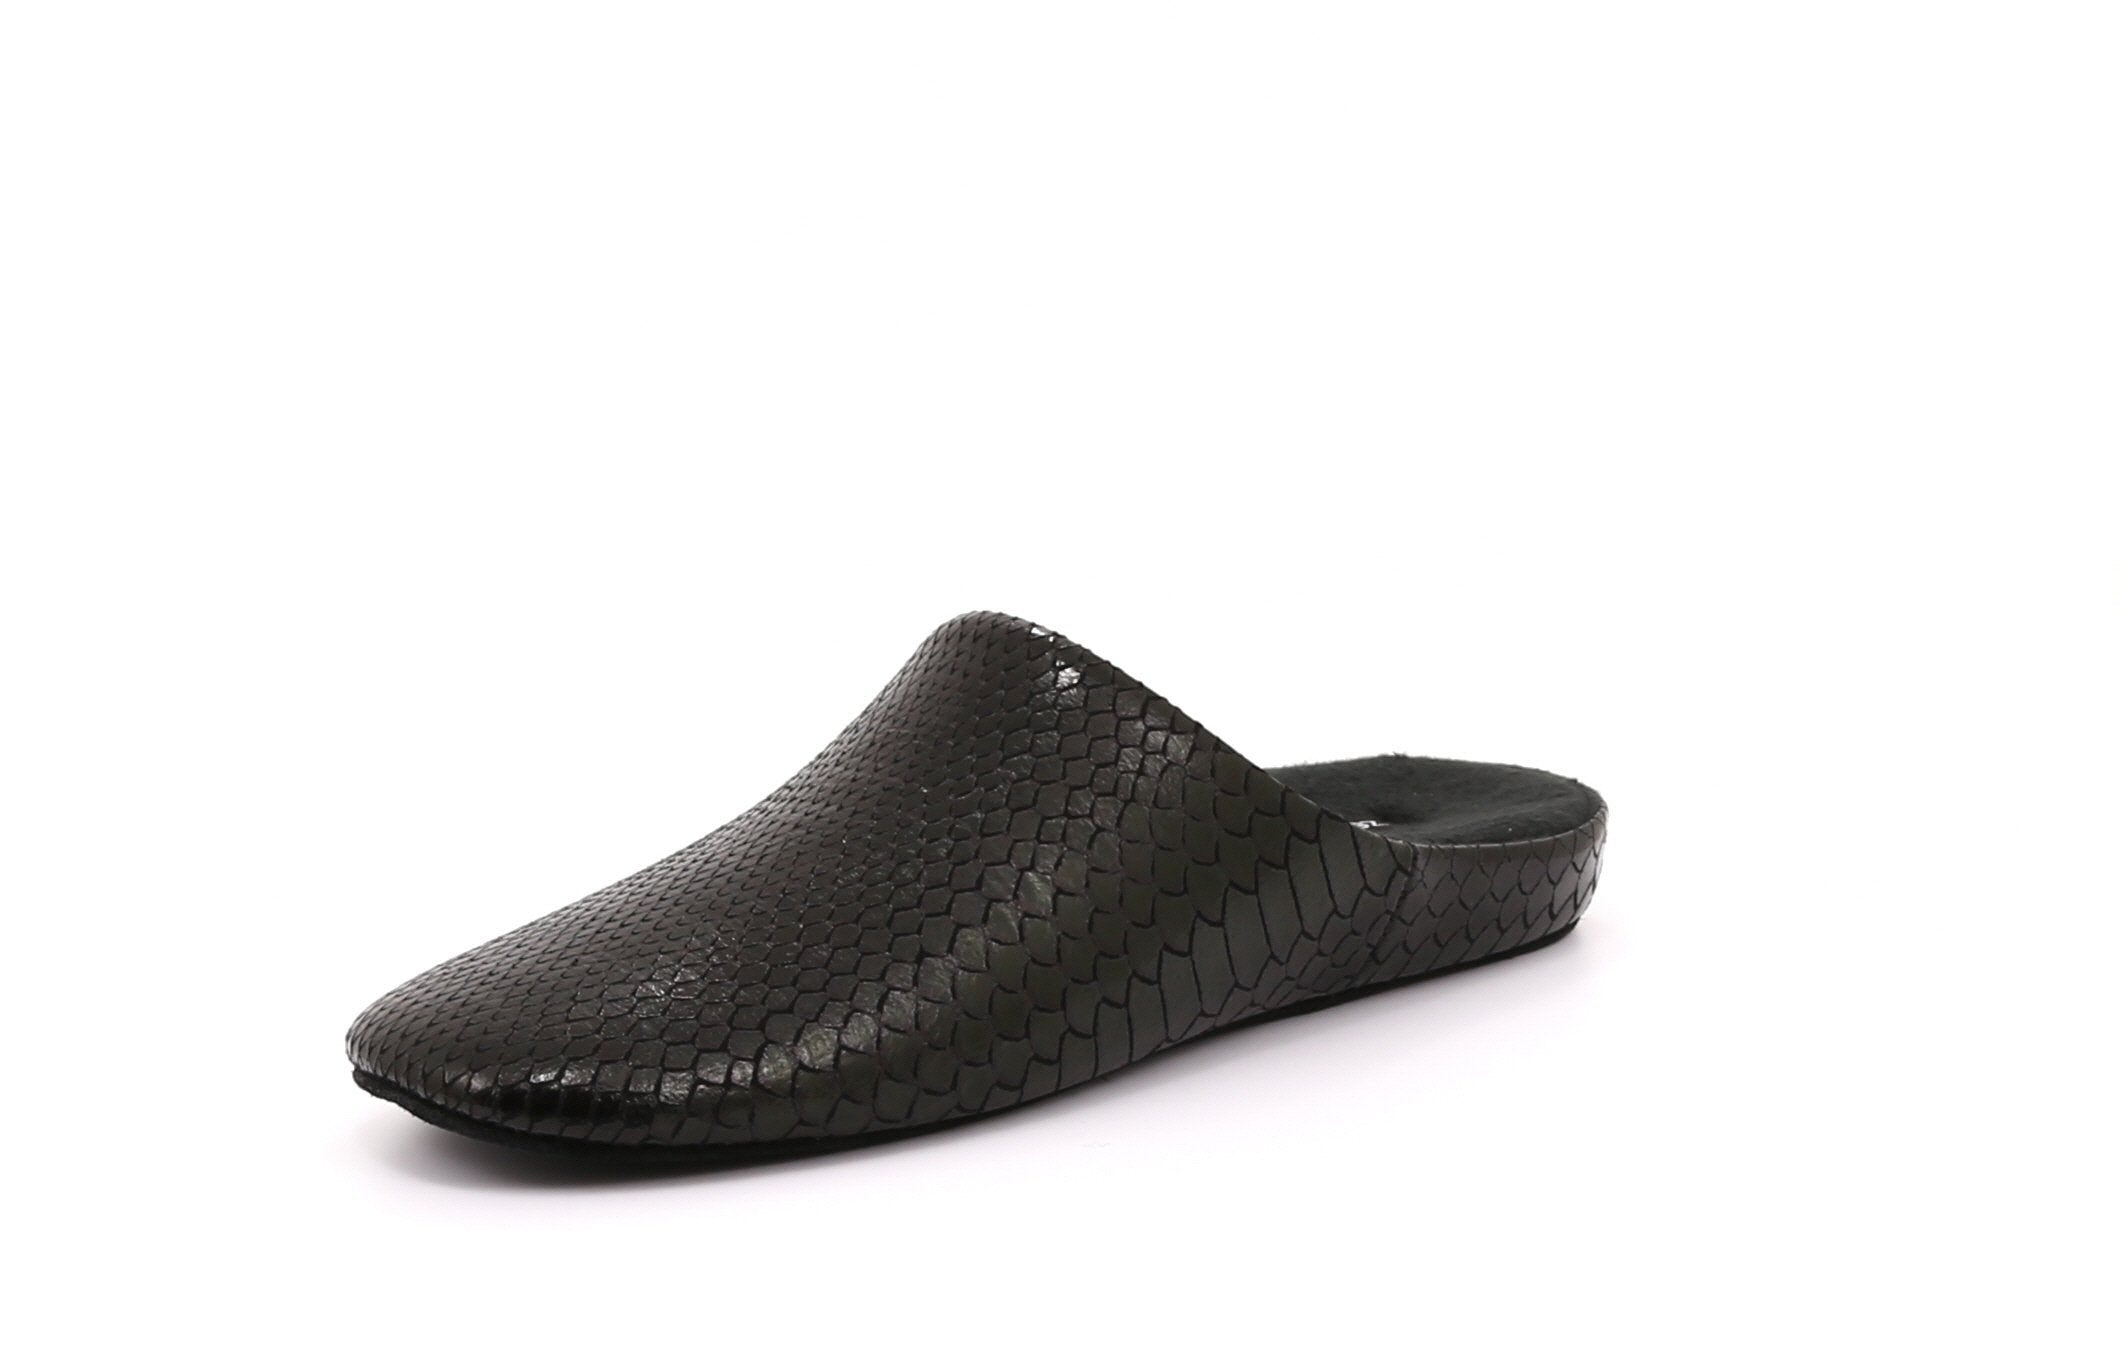 Jasper Men's Slippers in Snake Print Microsuede with Suede Sole - Alfred Cloutier Ltd. - Canada